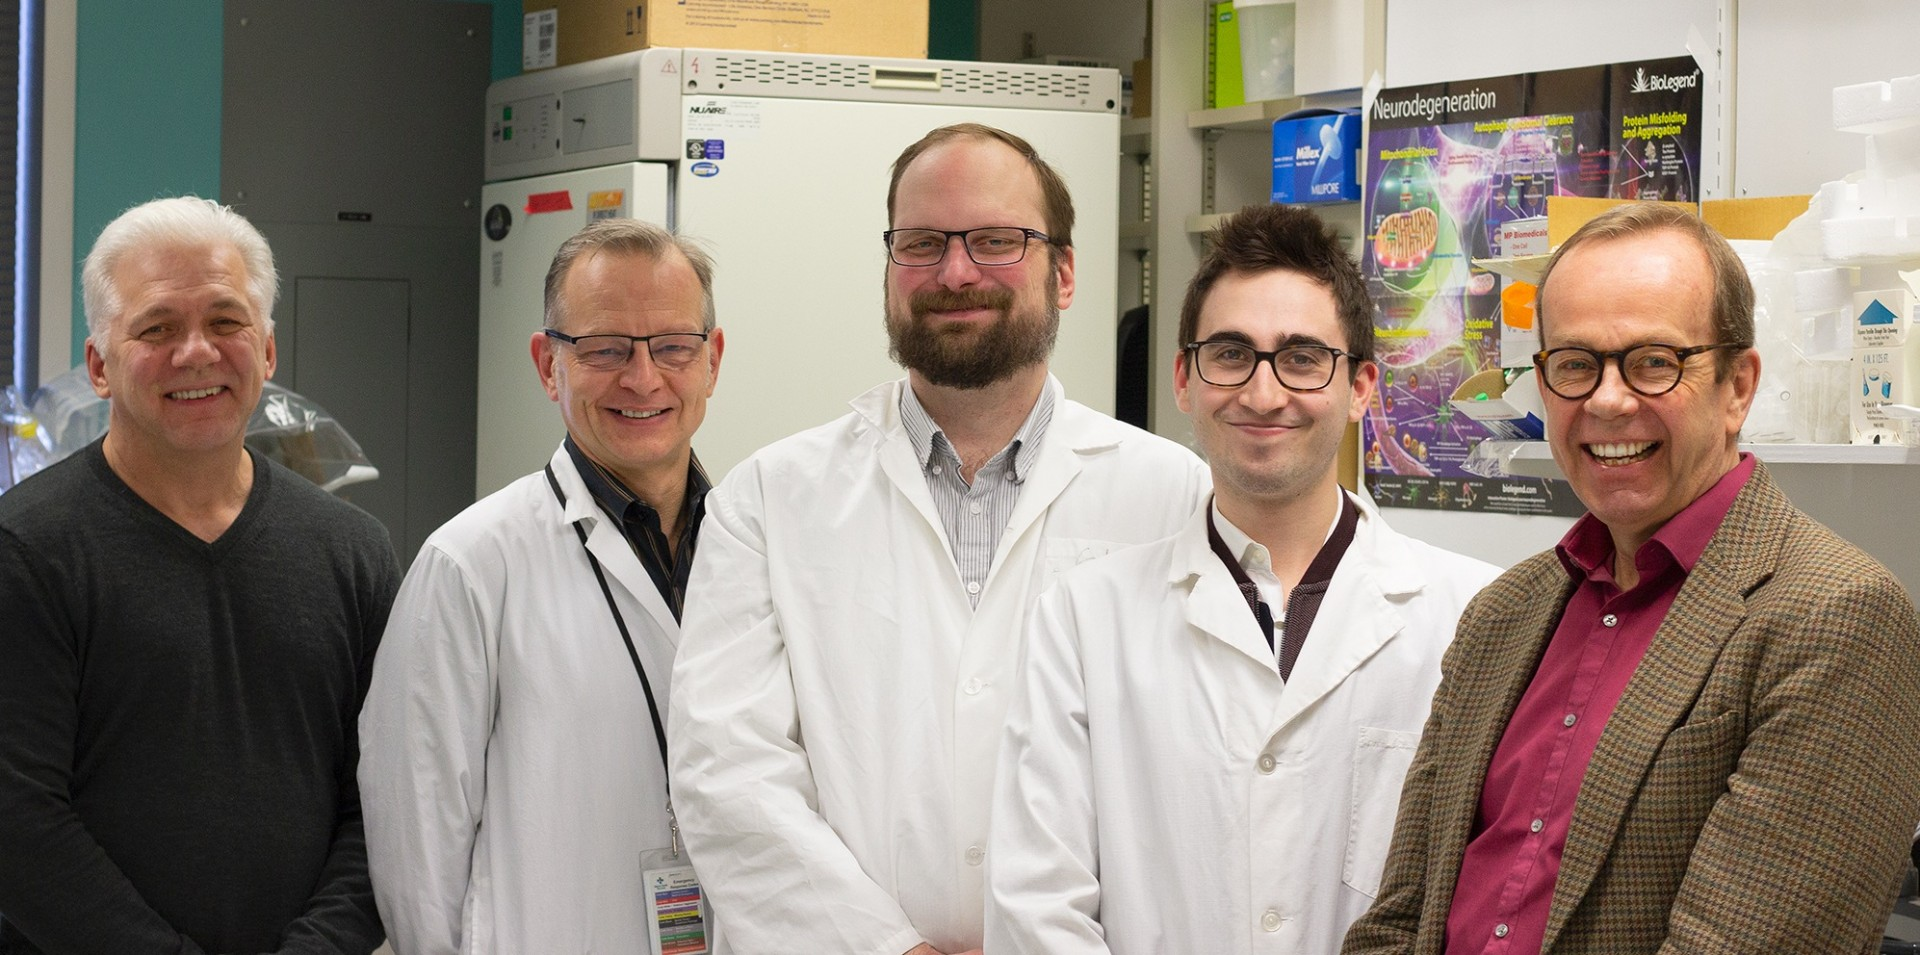 (From left) Medical researchers Tom Hobman, Frank van Landeghem, William Branton, Matthew Doan and Christopher Power were part of a U of A team that discovered a seemingly harmless virus is actually a cause of encephalitis. (Photo: Jordan Carson)